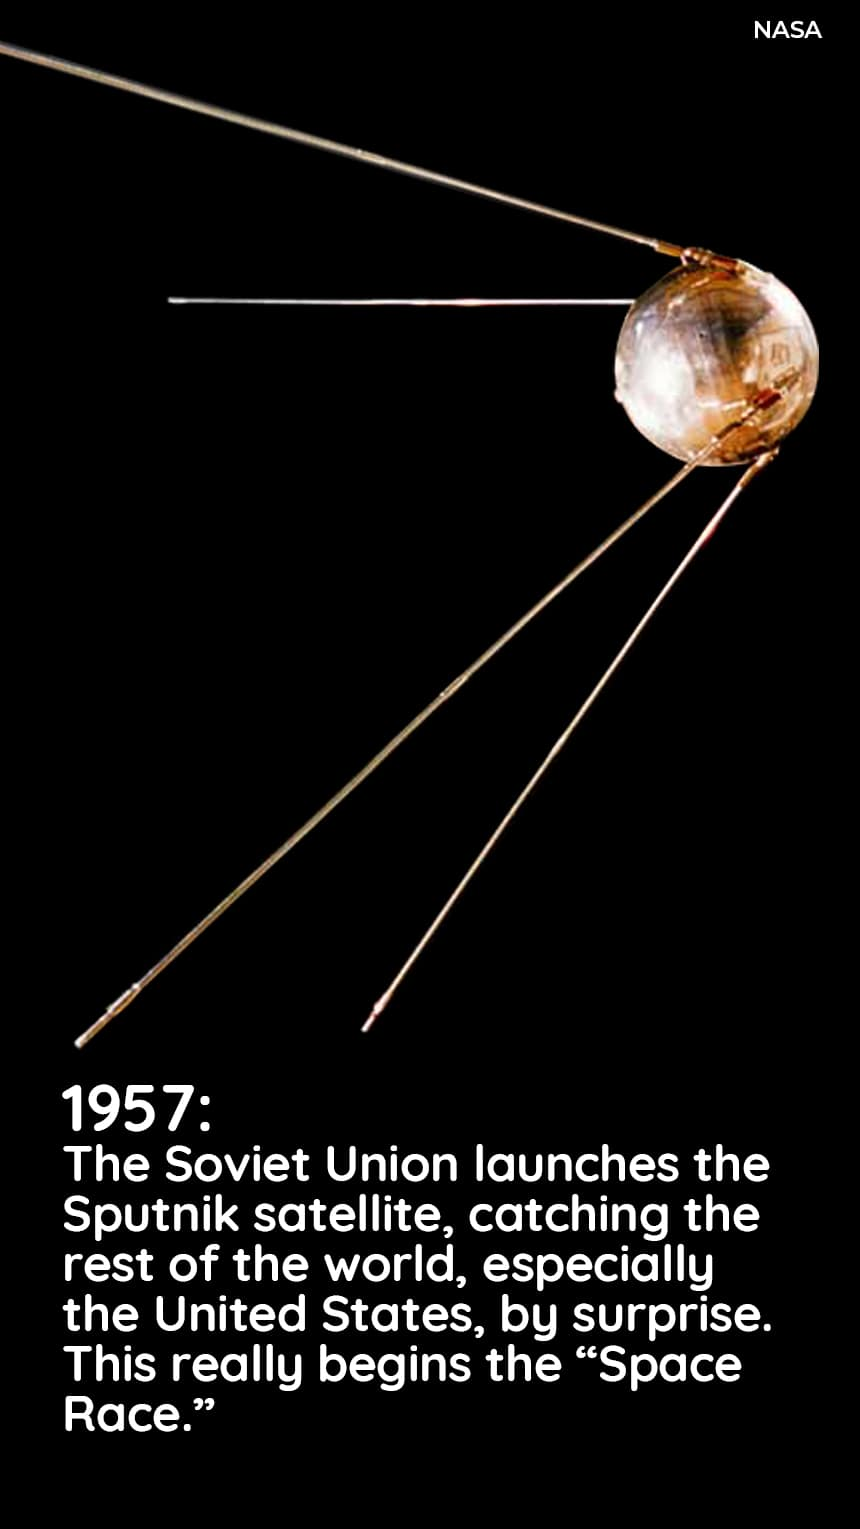 1957: The Soviet Union launches the Sputnik satelitte, catching the United States, especially the rest of the world, by surprise. This really begins the Space Race.